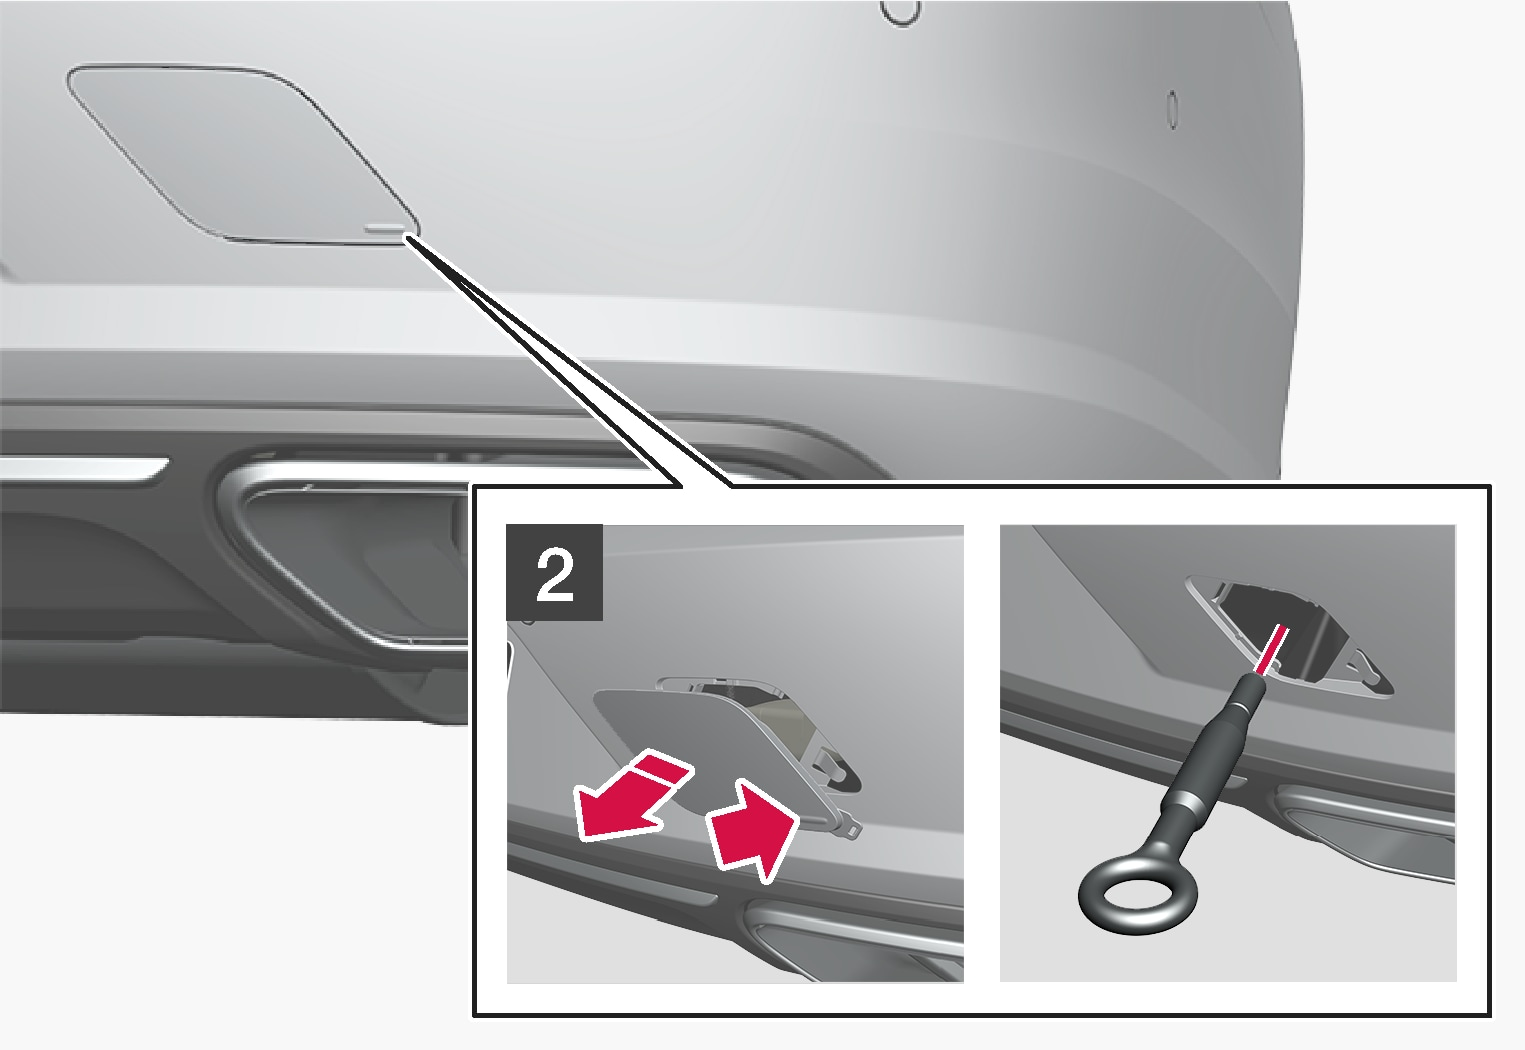 P5-1617-S90-V90-towing eye fitting rear step 3